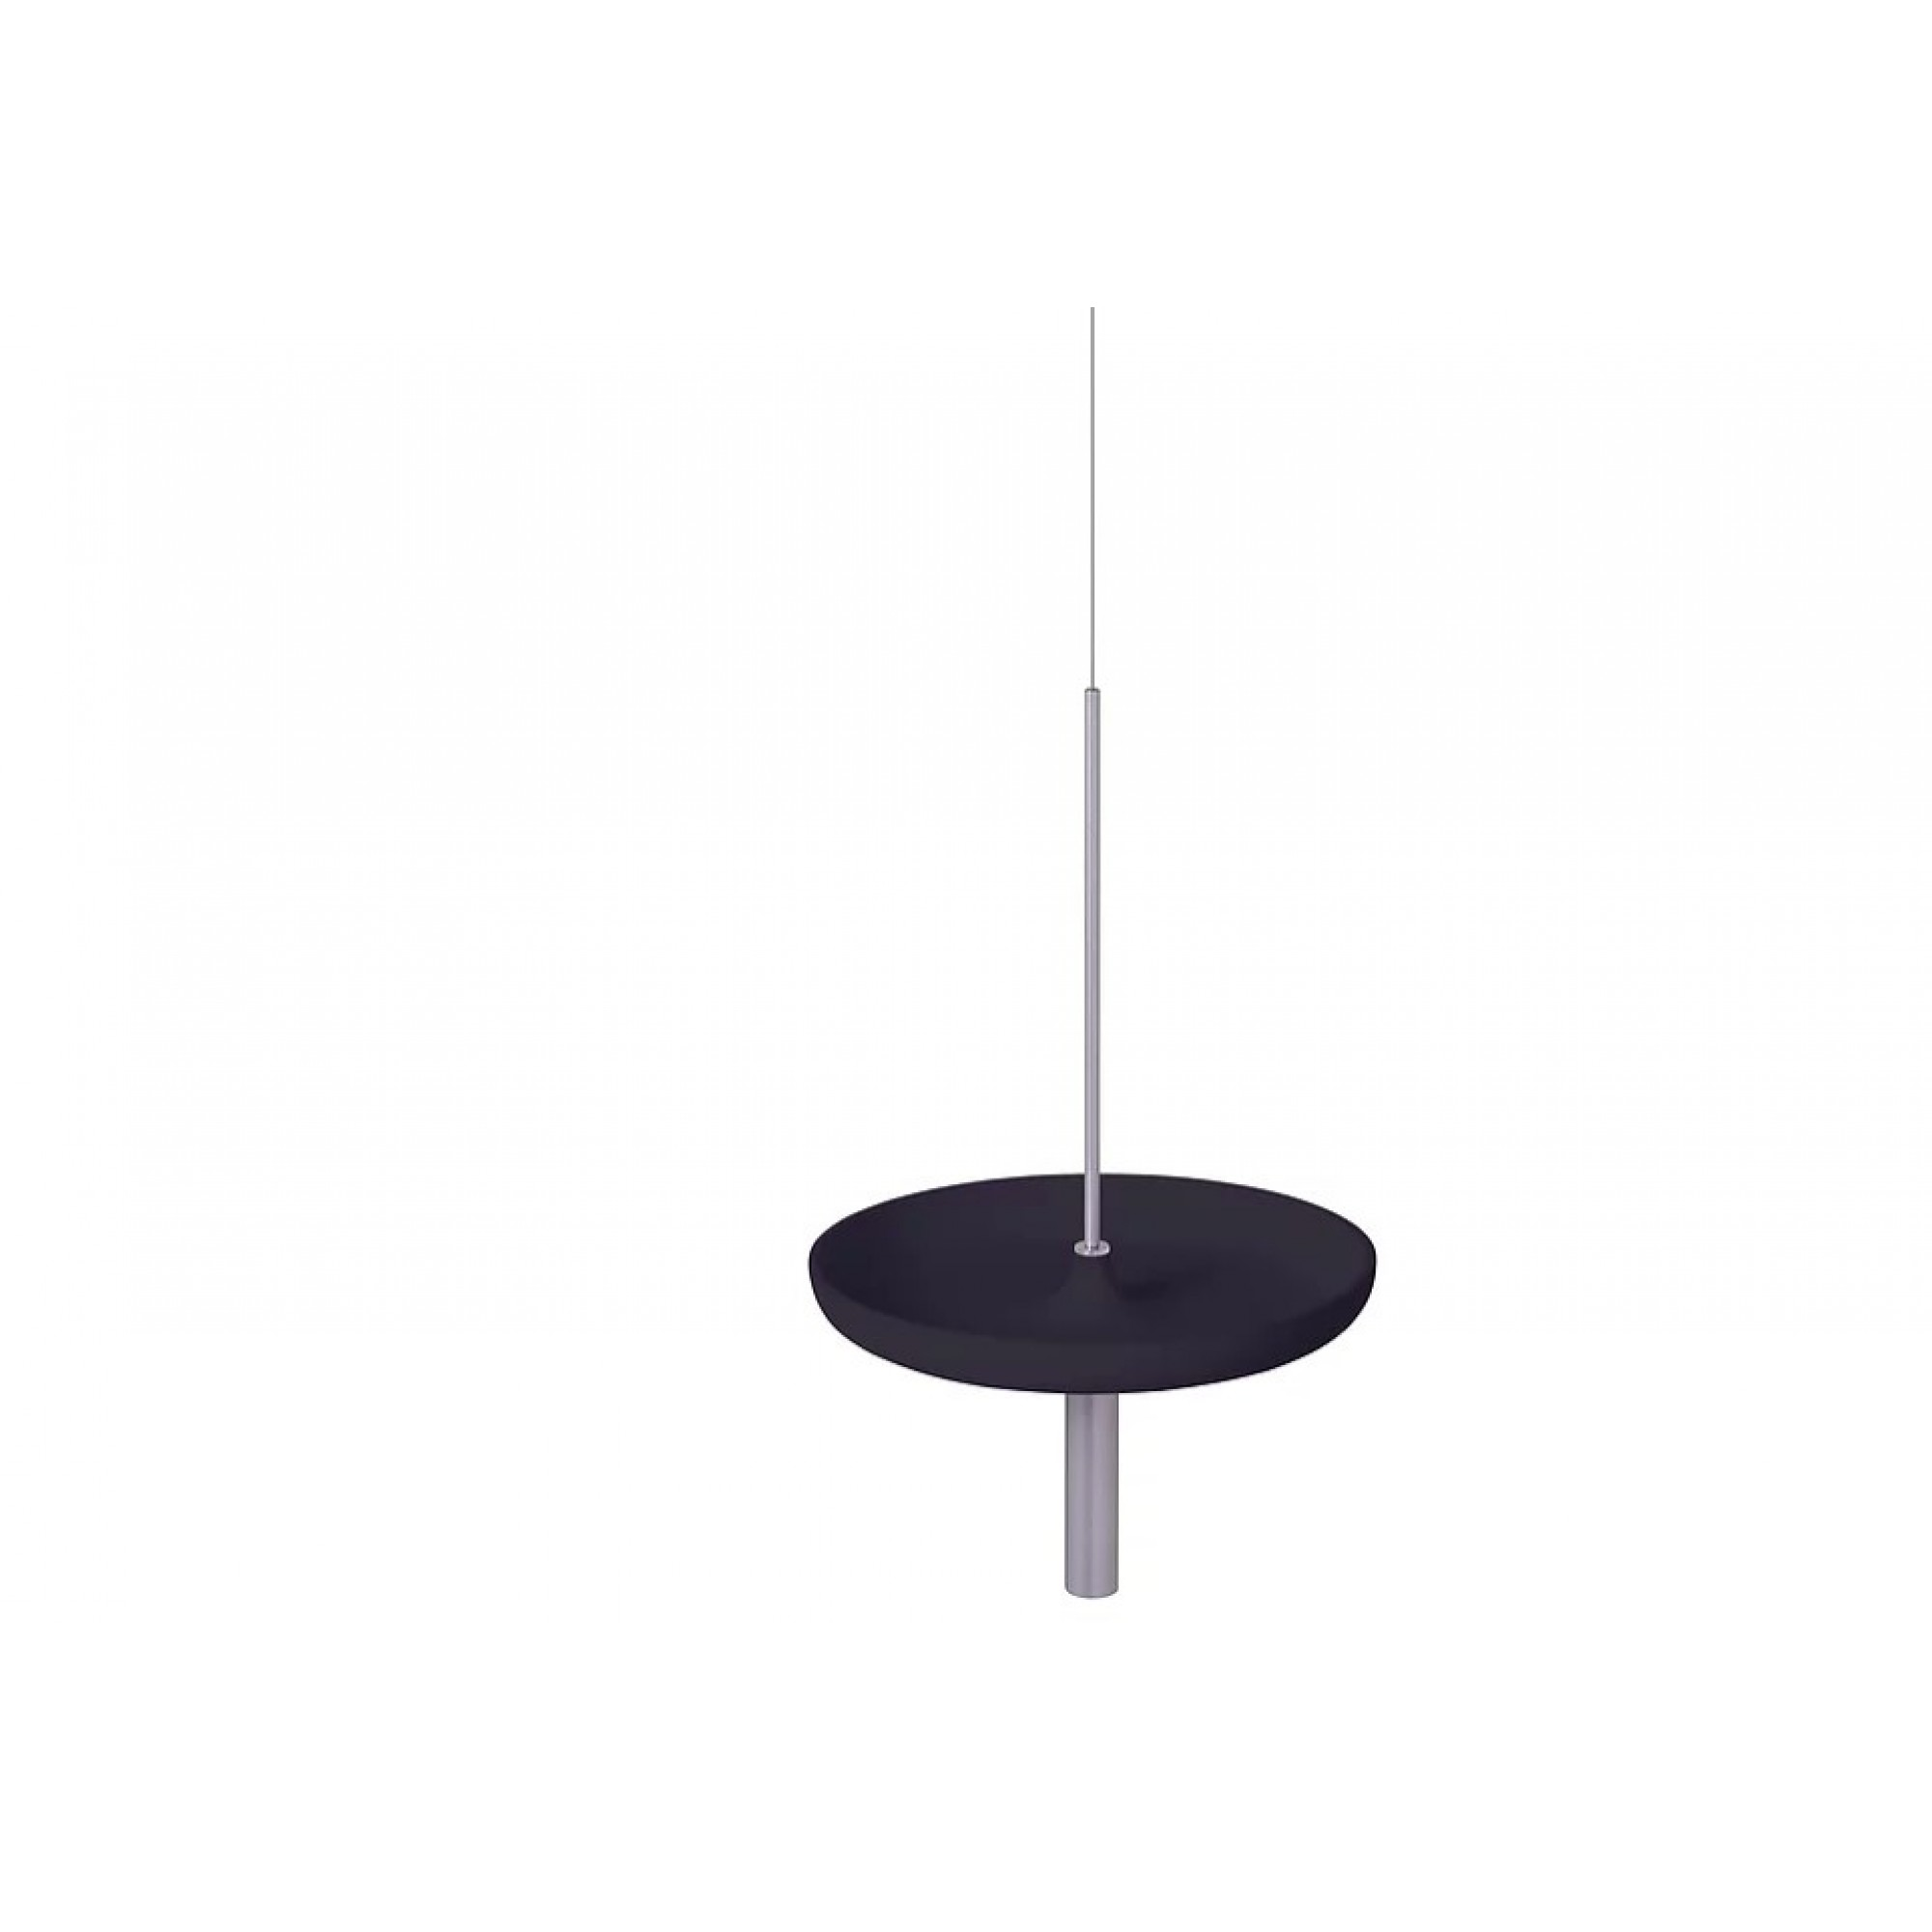 Circulum decorative table, suspended from the ceiling with bowl type tray, Black ABS and Chrom accessories